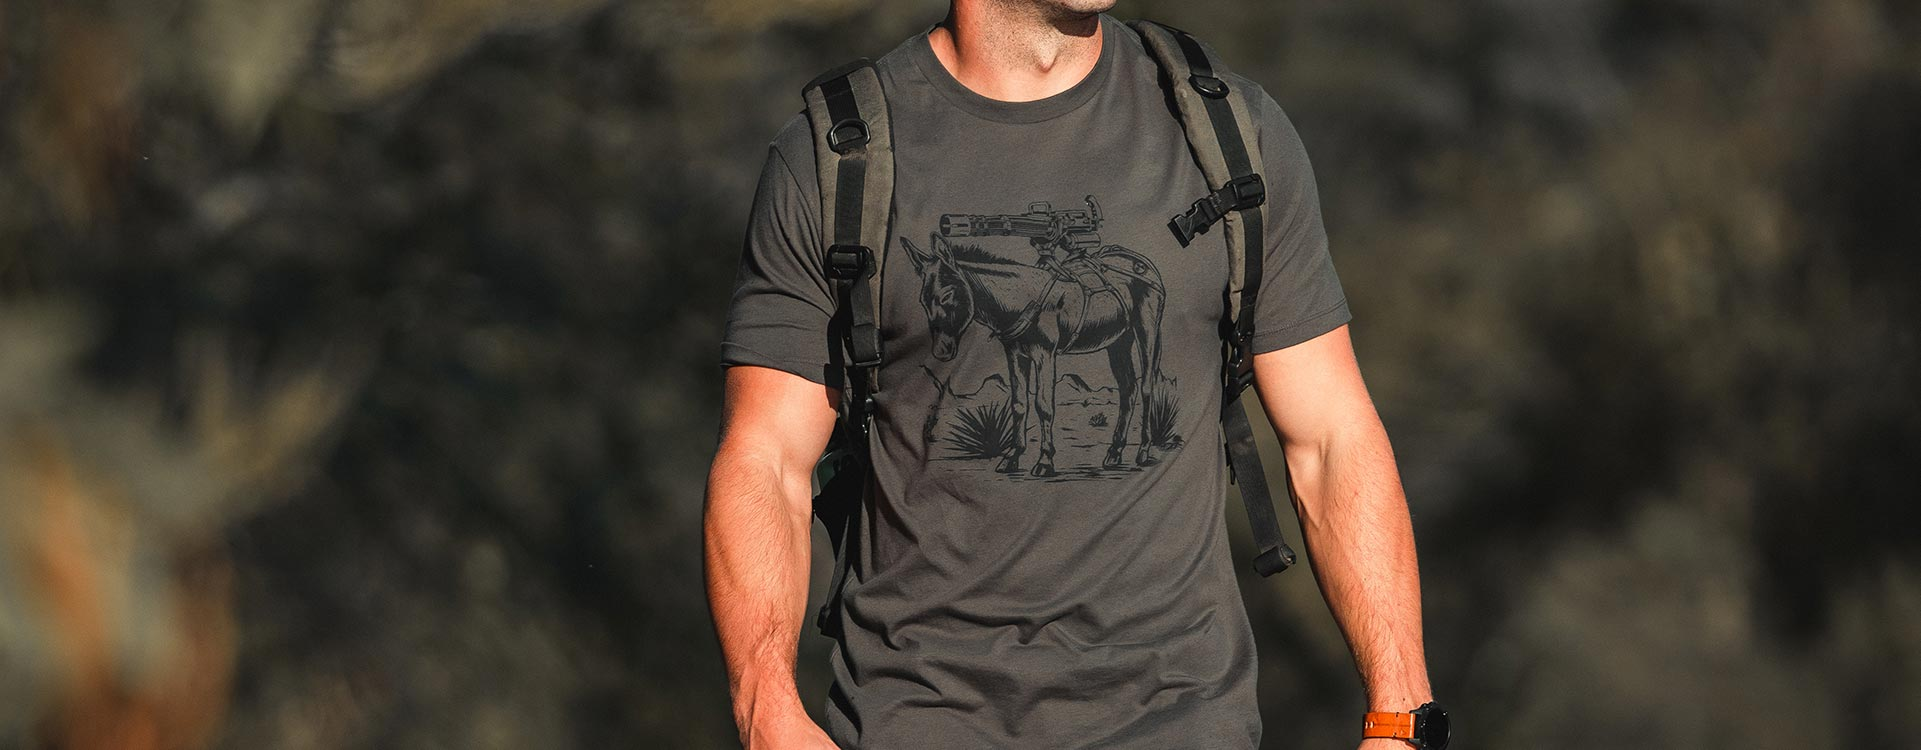 Magpul Burro T-Shirt on a man hiking outdoors with a backpack